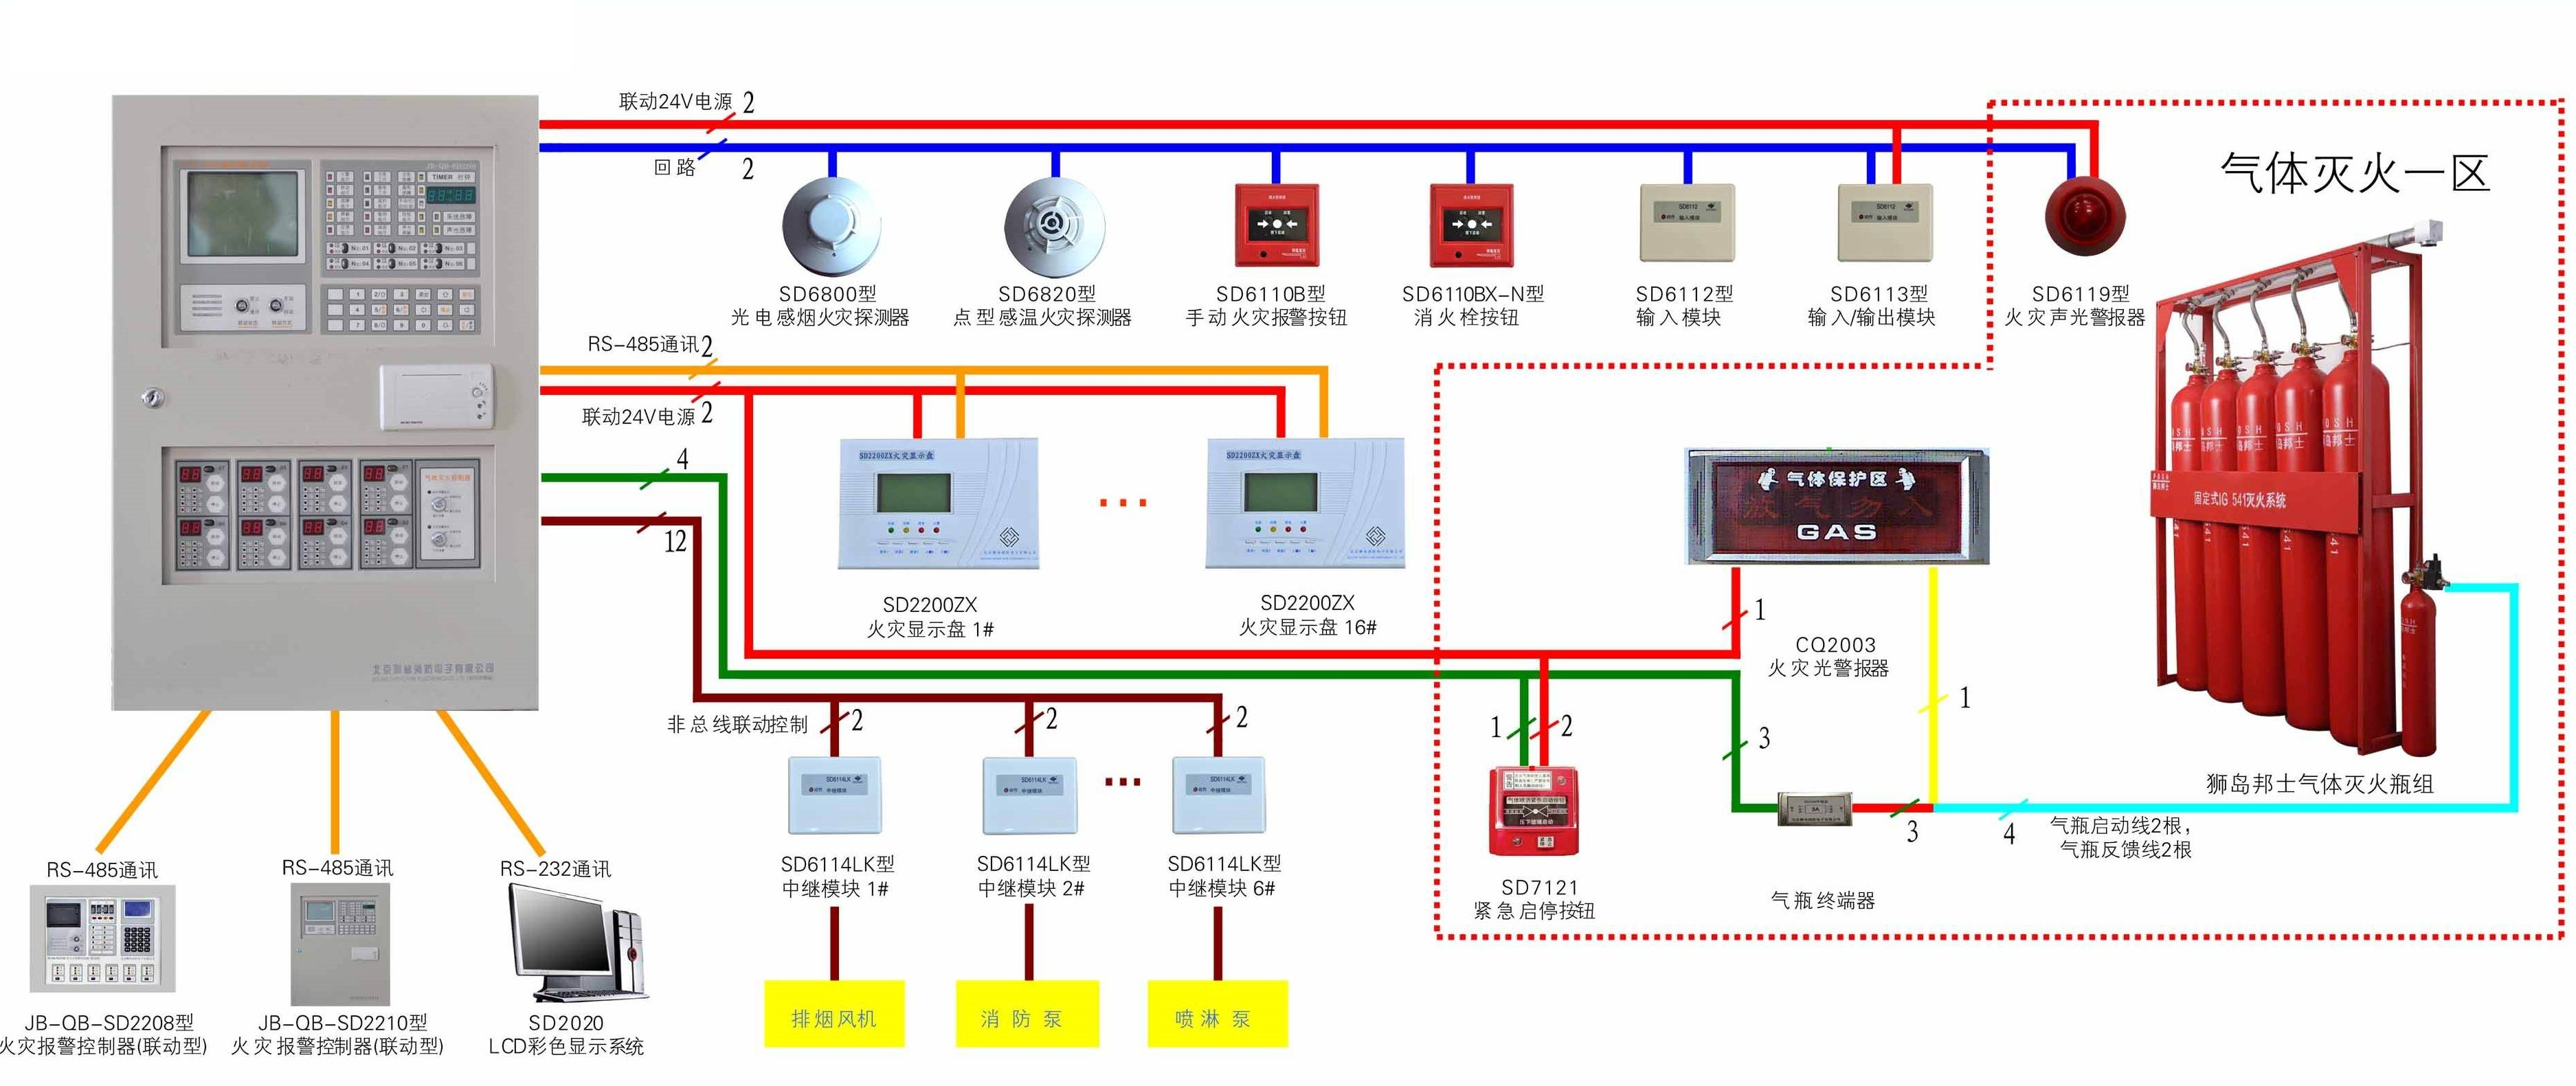 ow to start a fire security project from laying the pipeline to program fire detectors and debugging fire security circuit we guide you how to install the  [ 3749 x 1581 Pixel ]